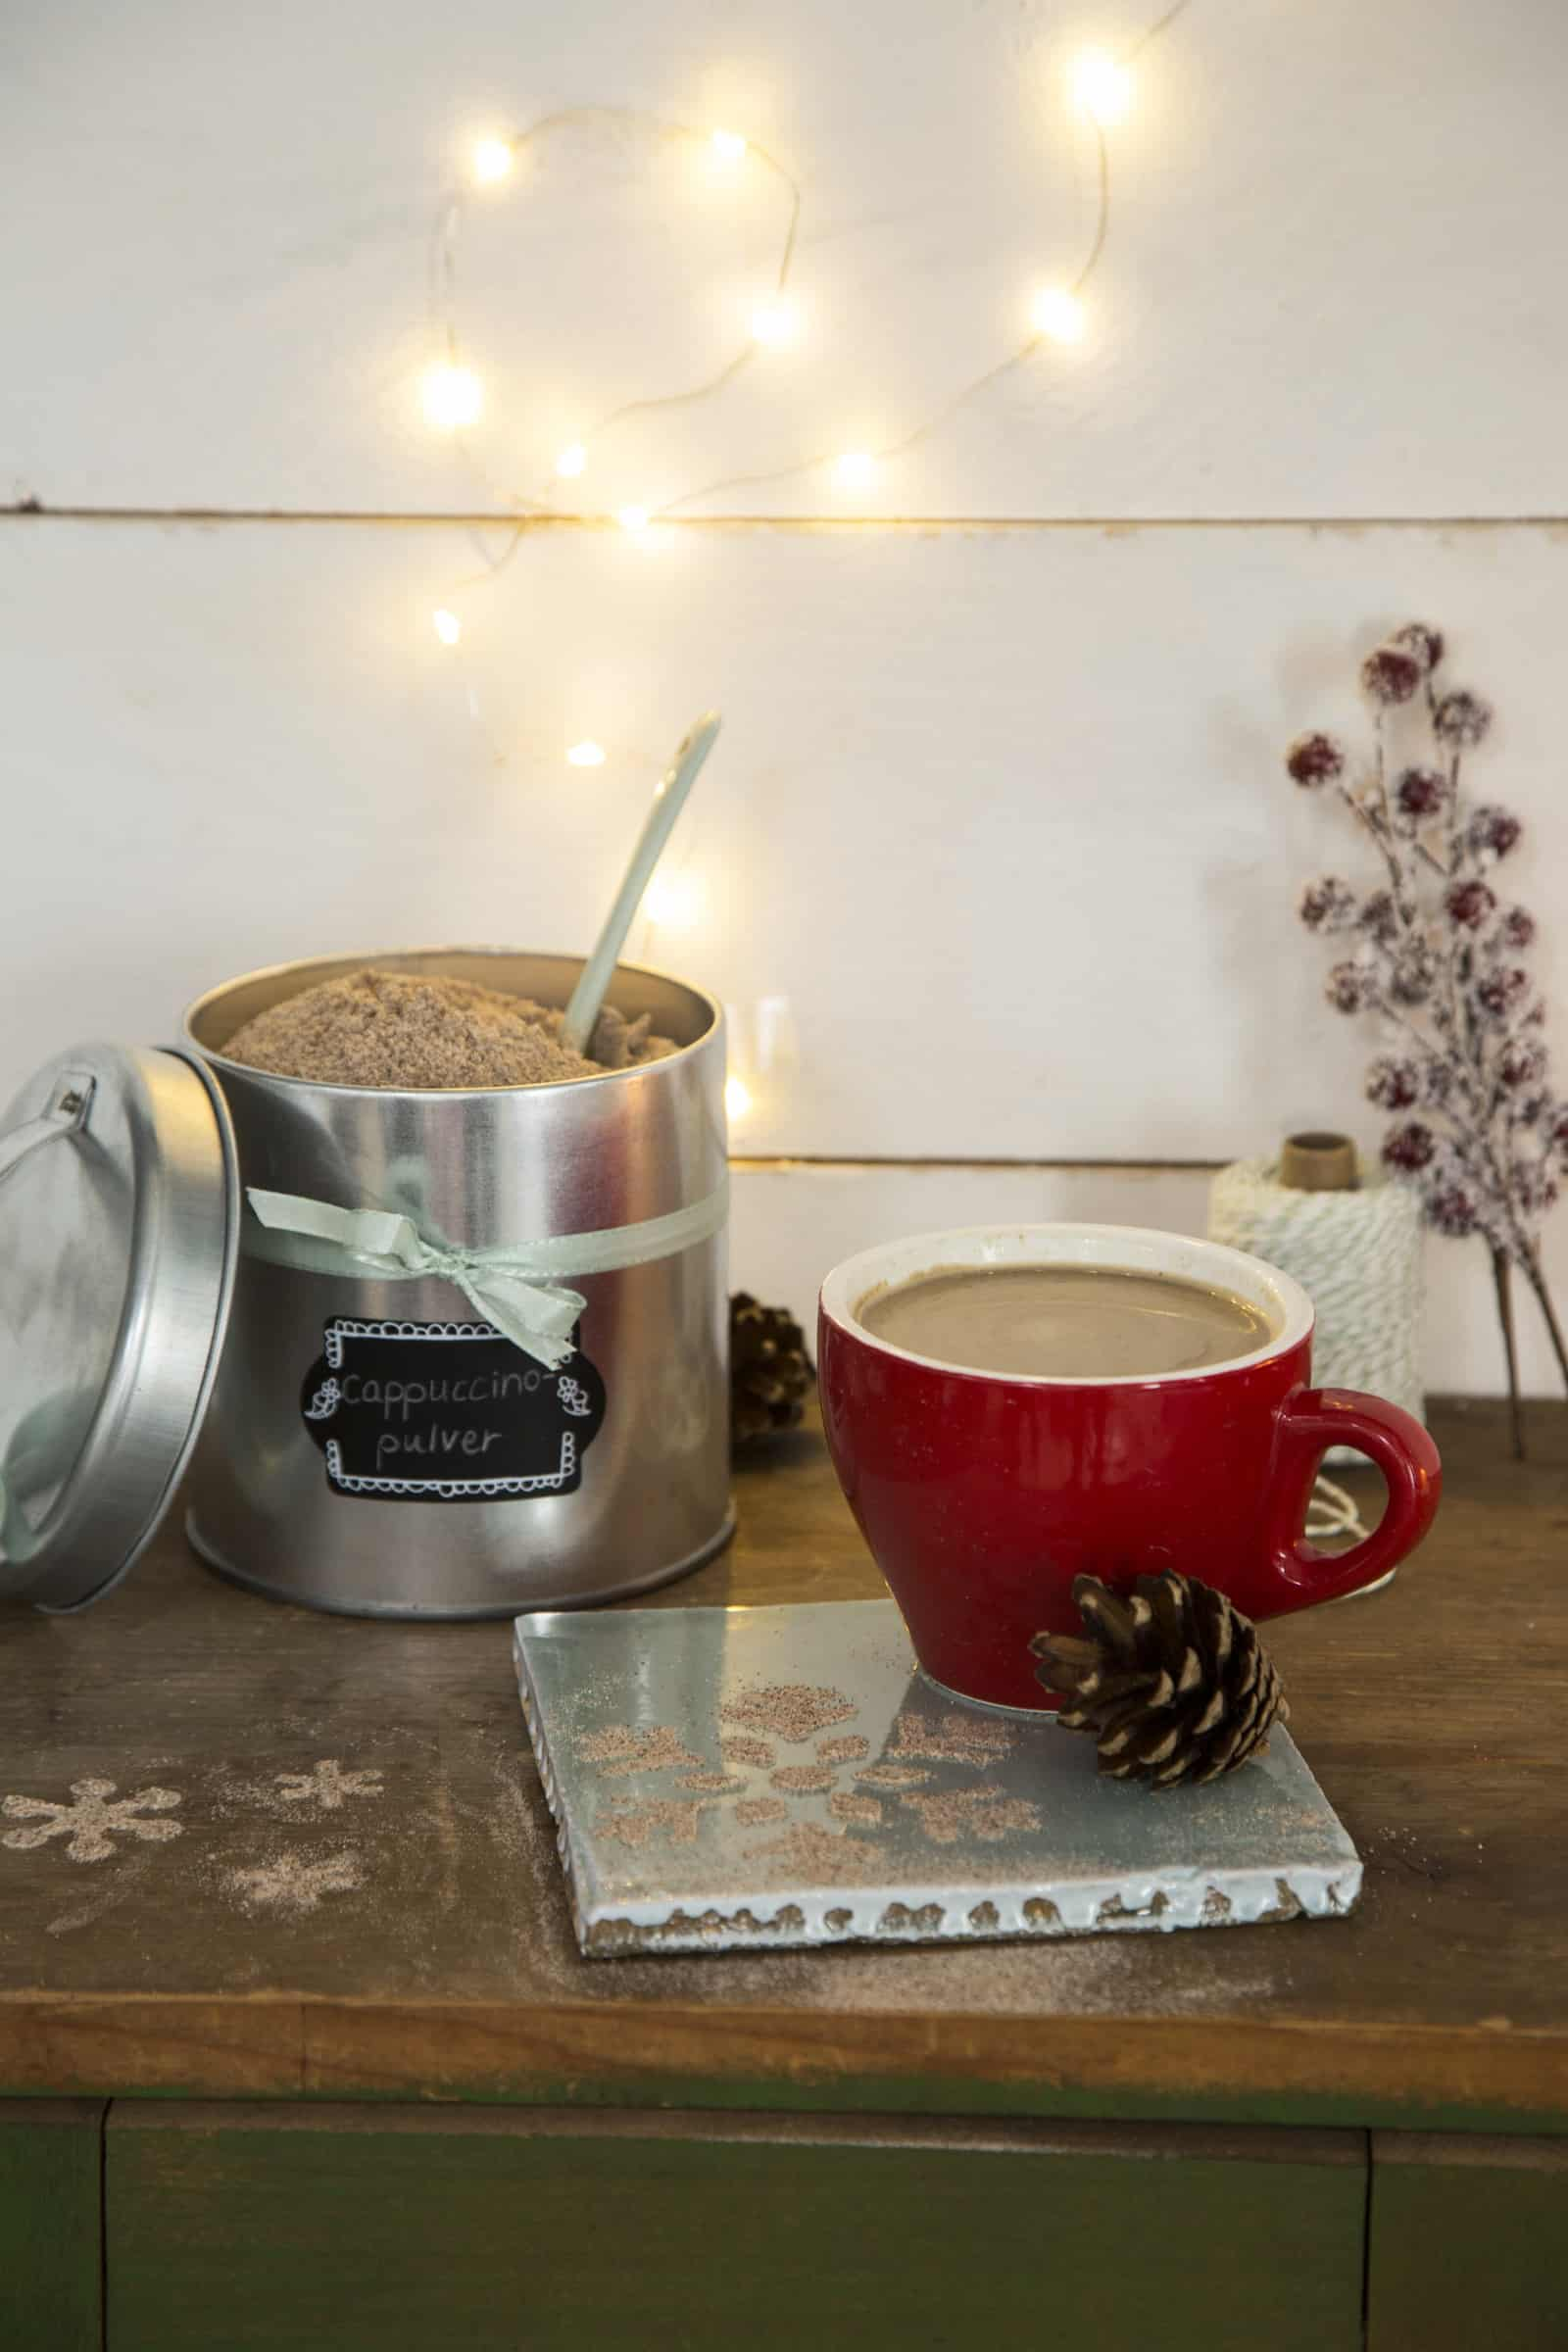 Cappuccinopulver mit dem Thermomix® – Foto: Kathrin Knoll